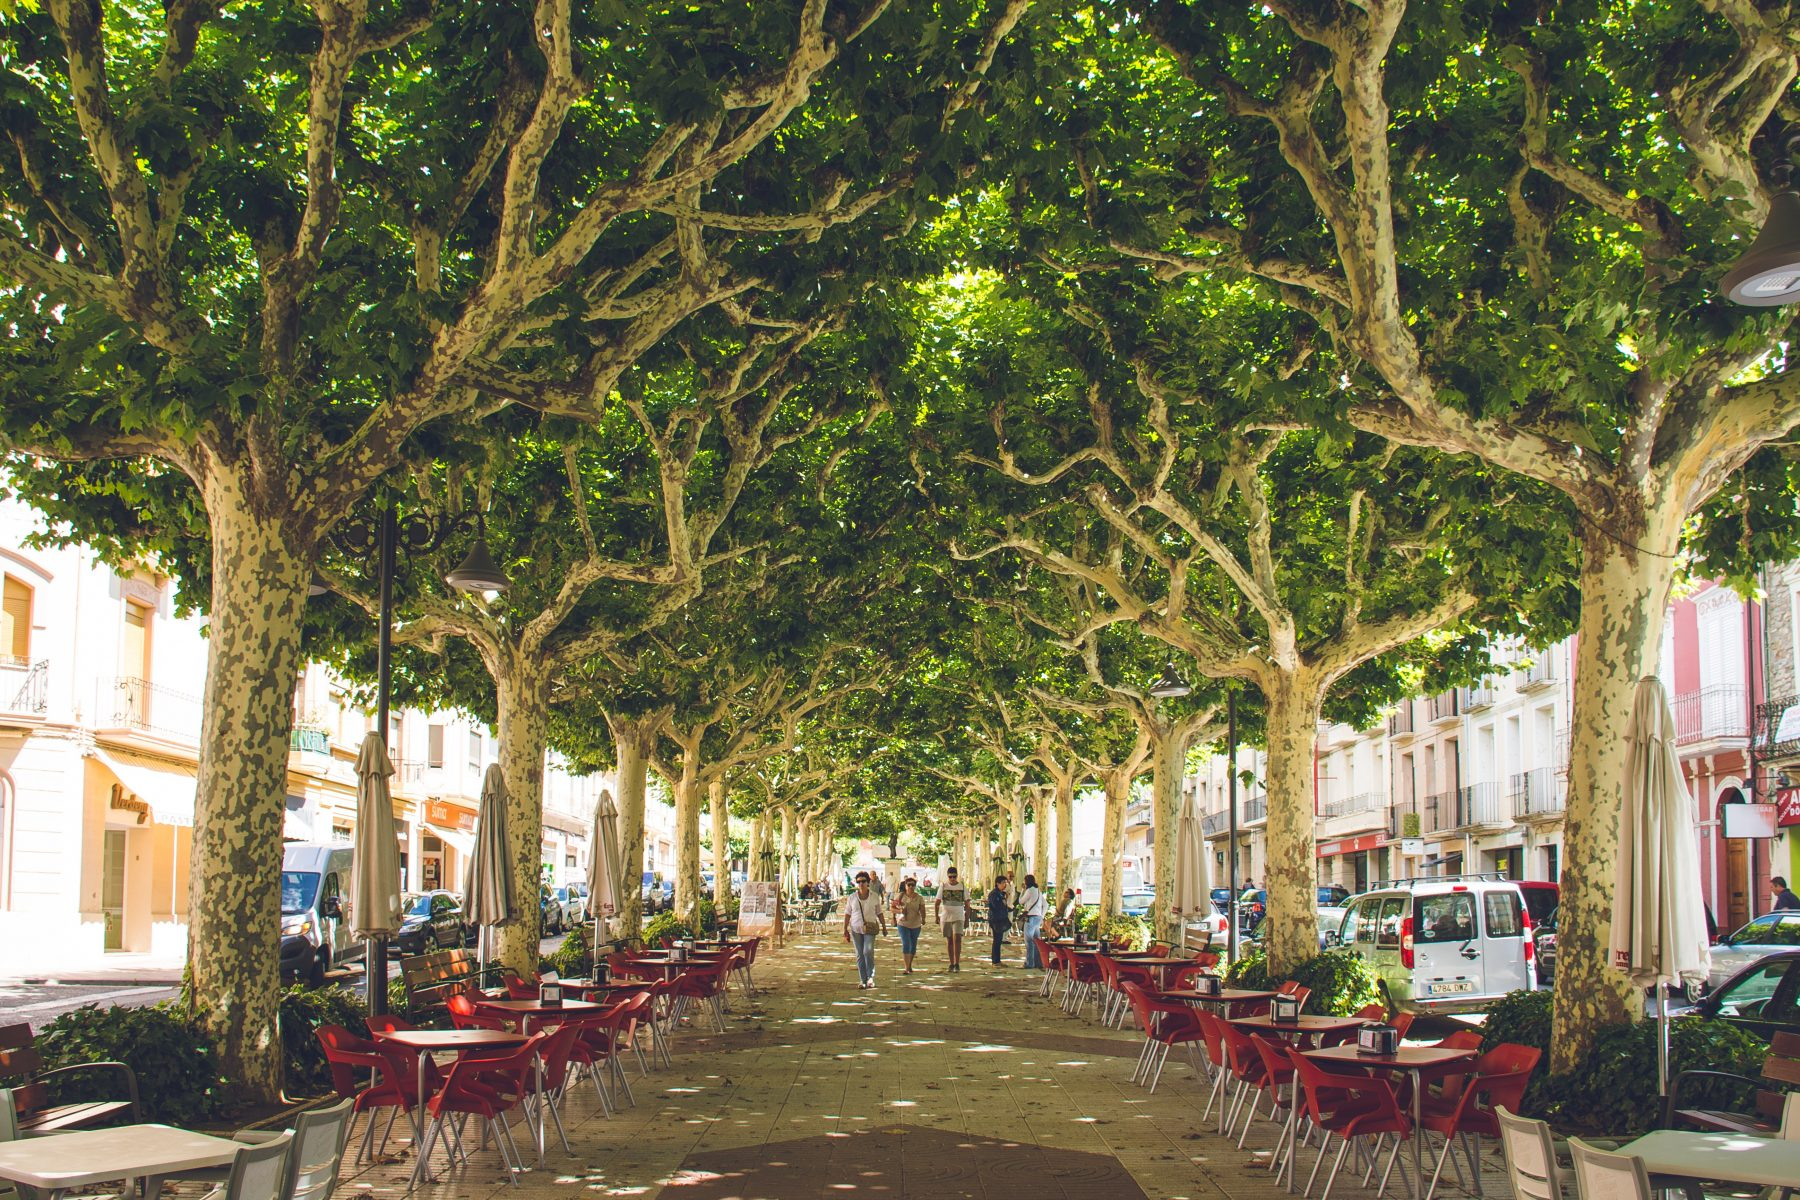 5 Benefits of Trees in Urban Areas